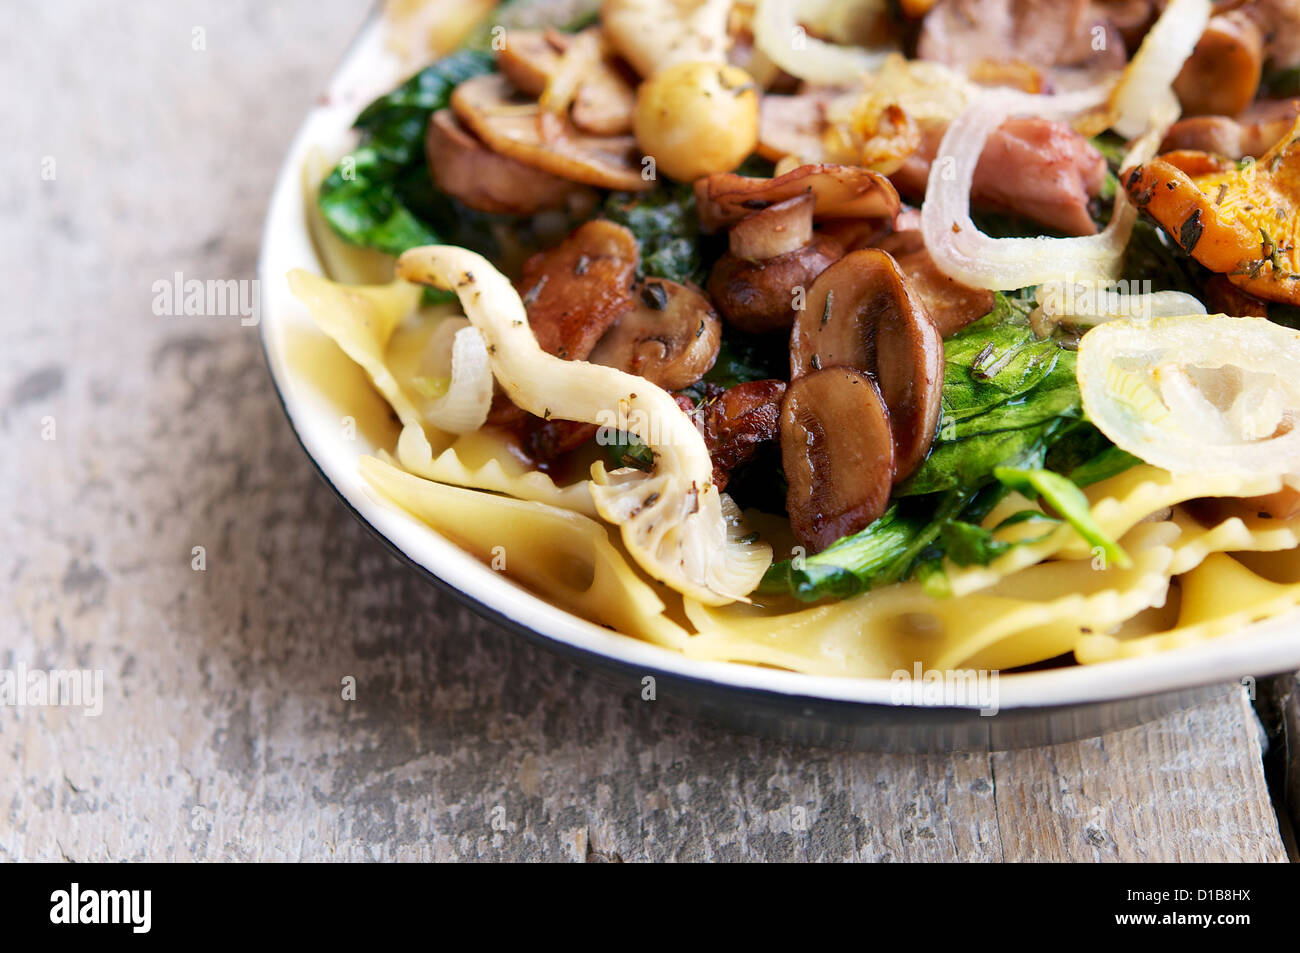 Vegetarian meal with mixed mushrooms, onion and fresh spinach on pasta. - Stock Image